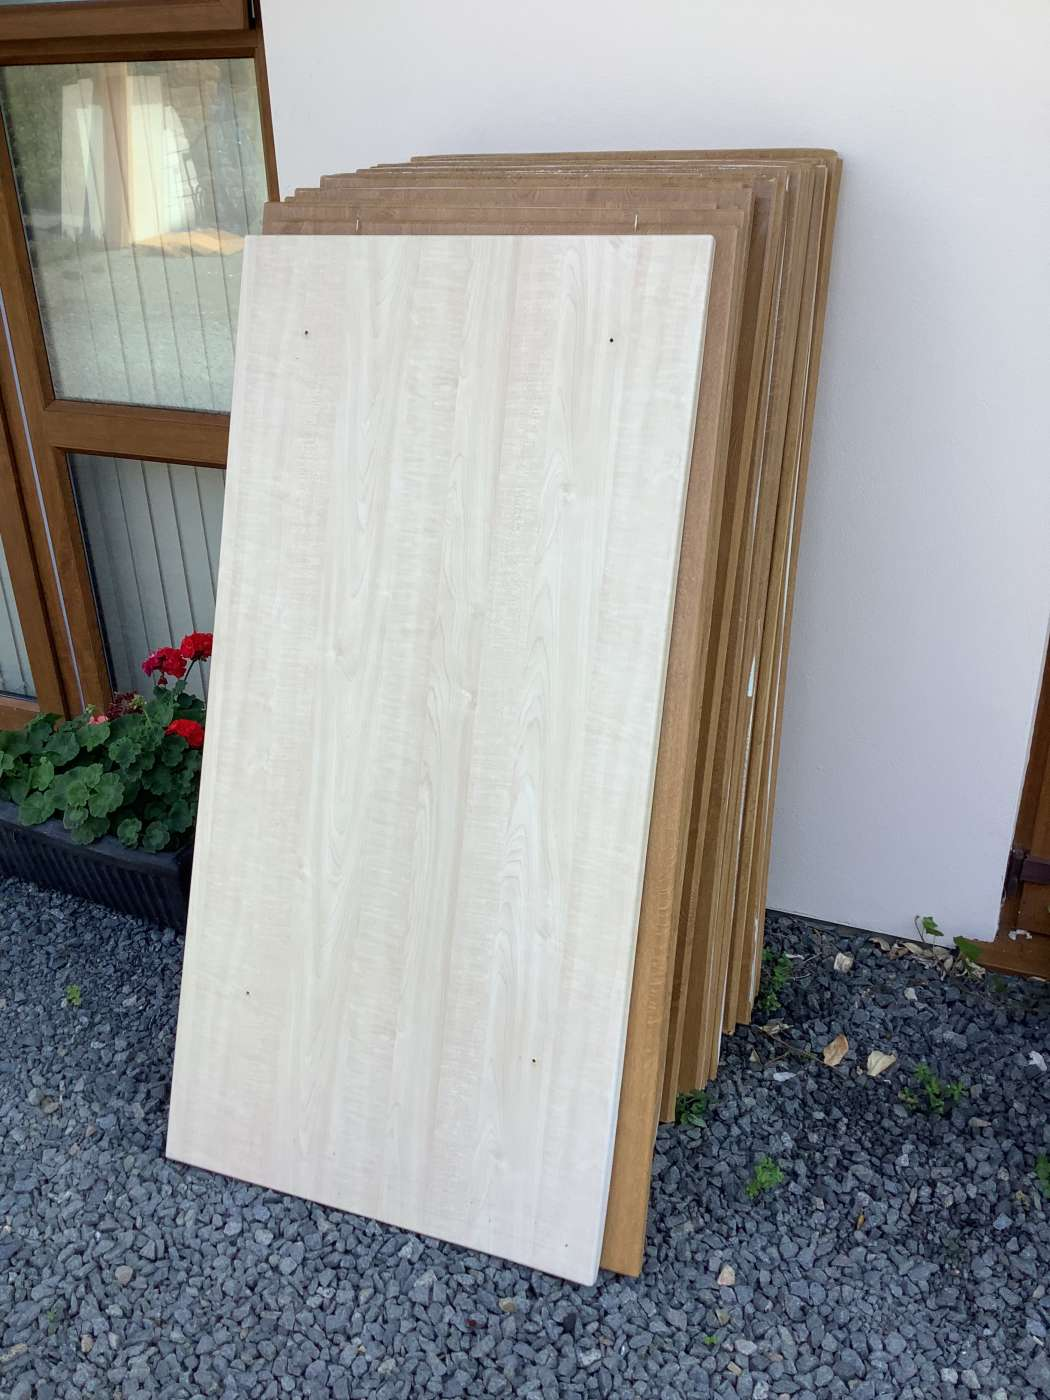 Delaminated melamine chipboard bed headboards, cupboard doors, bedside table tops and drawer fronts